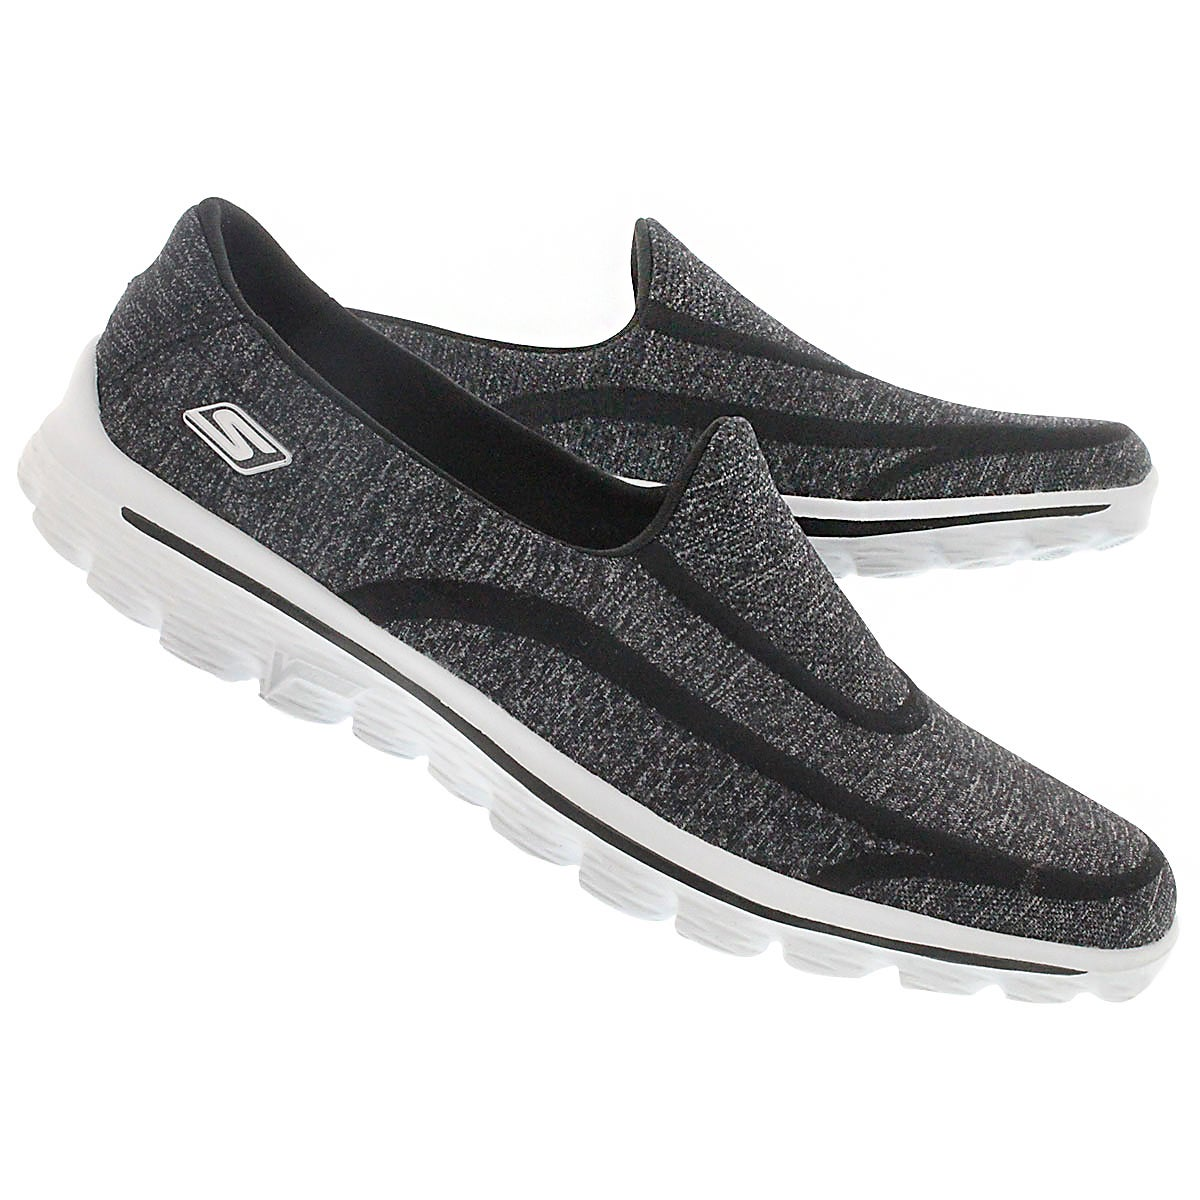 Lds GOwalk Super Sock blk/wht slip on